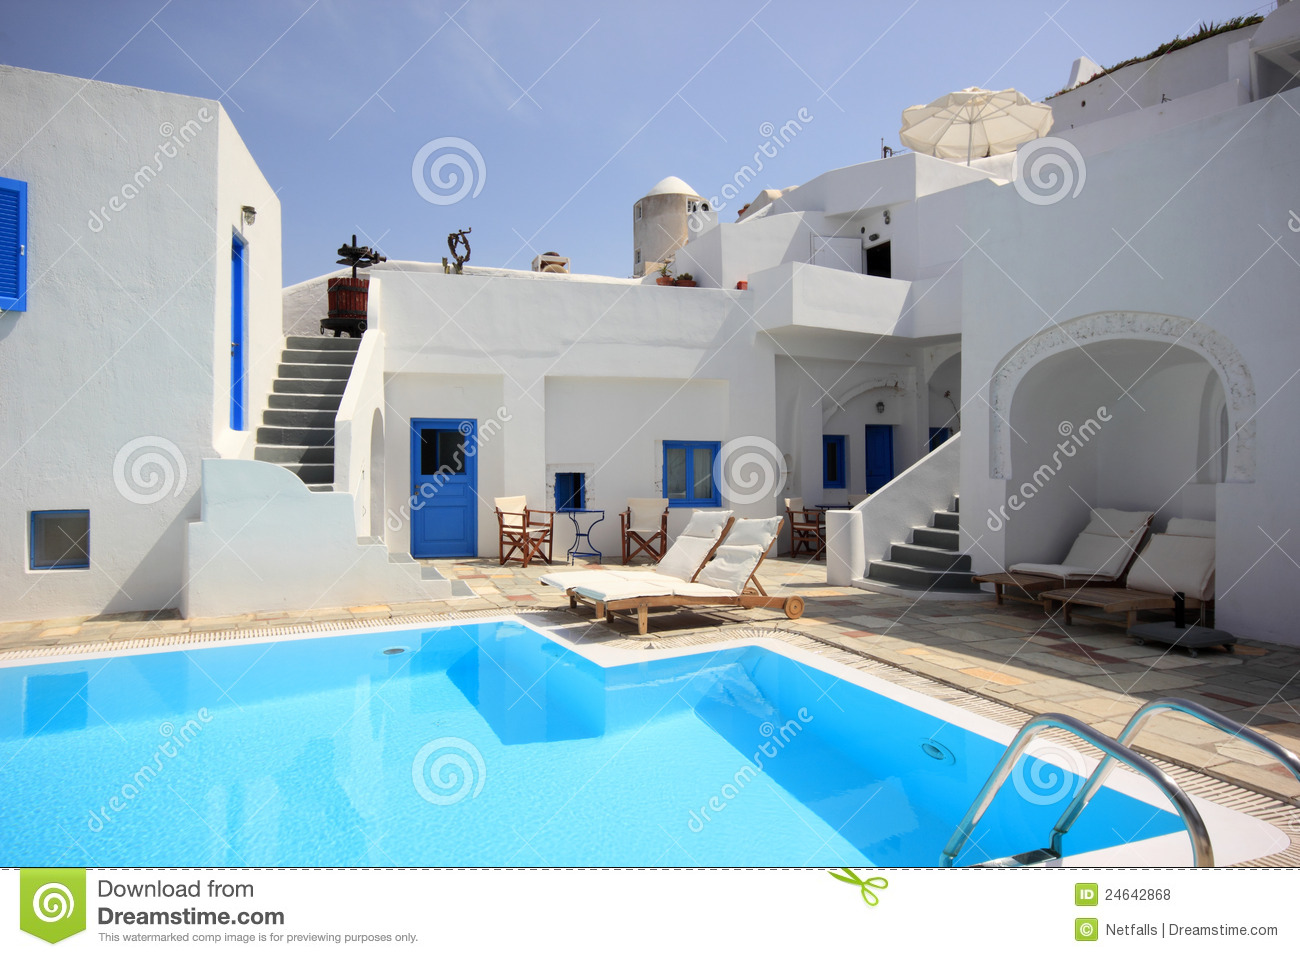 Santorini pool house royalty free stock photos image for Design hotels am meer